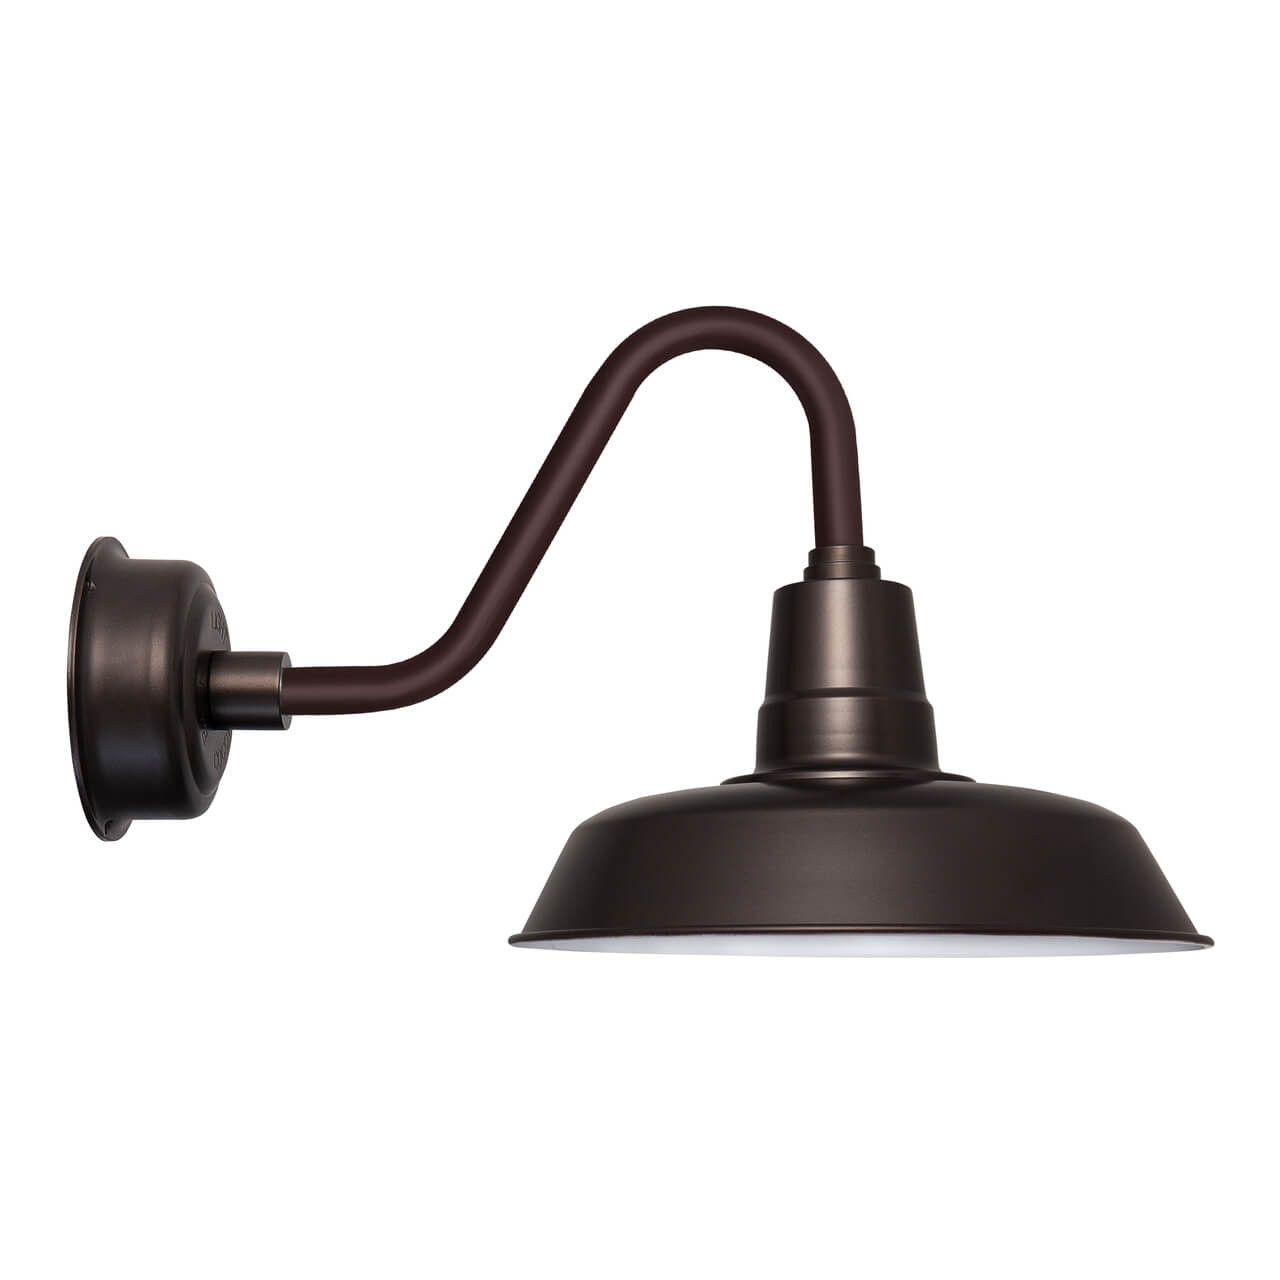 Oldage 14 vintage mahogany bronze gooseneck led barn light